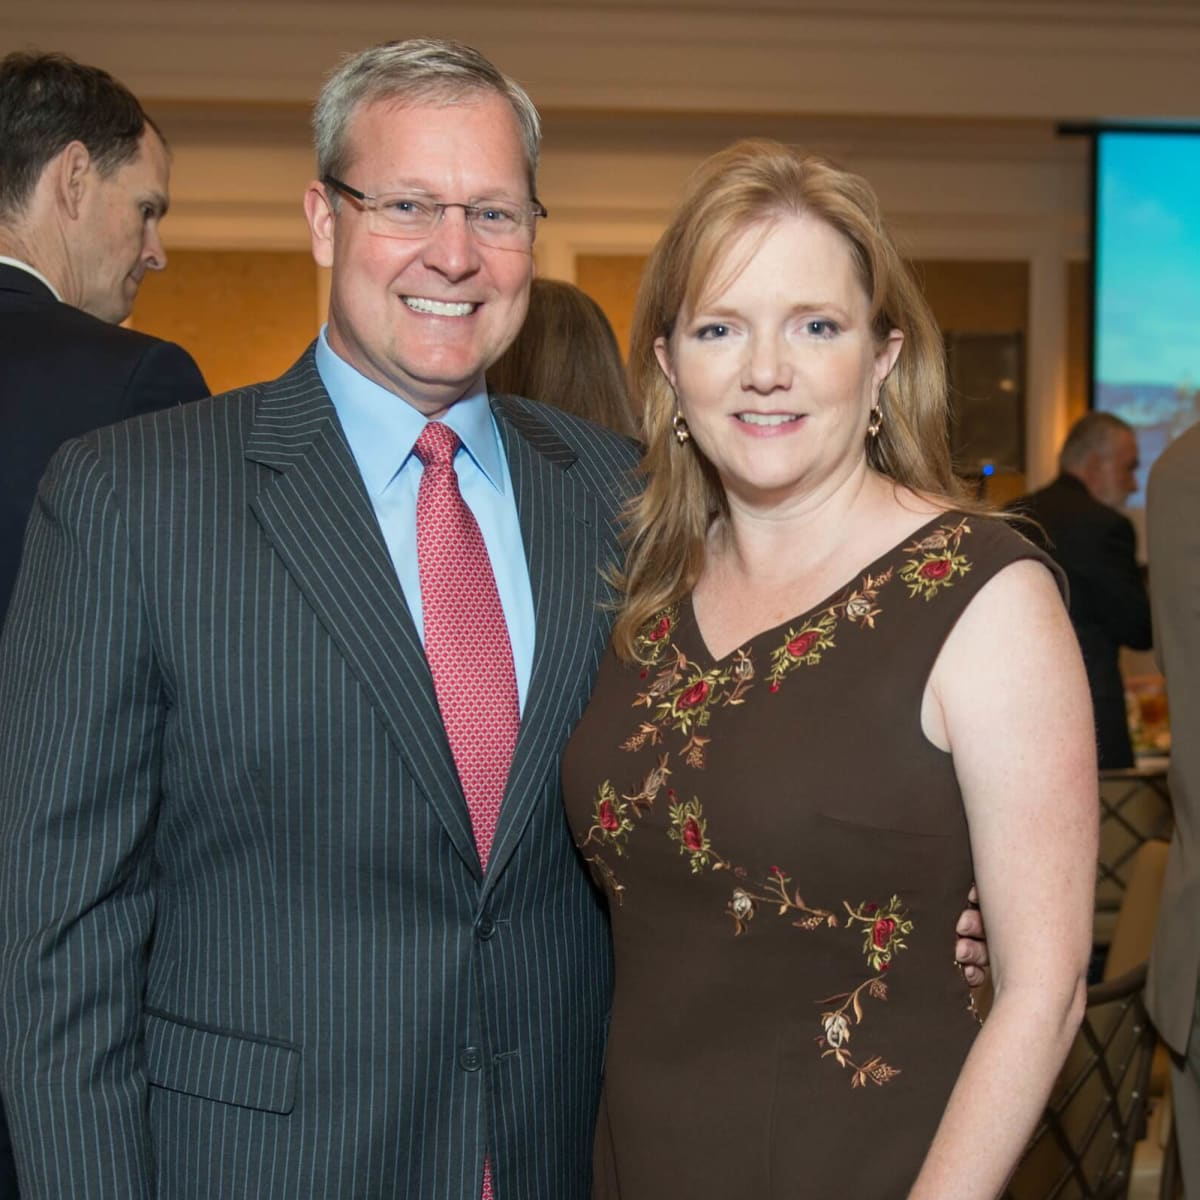 Mission to Mars luncheon 9/16, Larry Lawyer, Alicia Lawyer